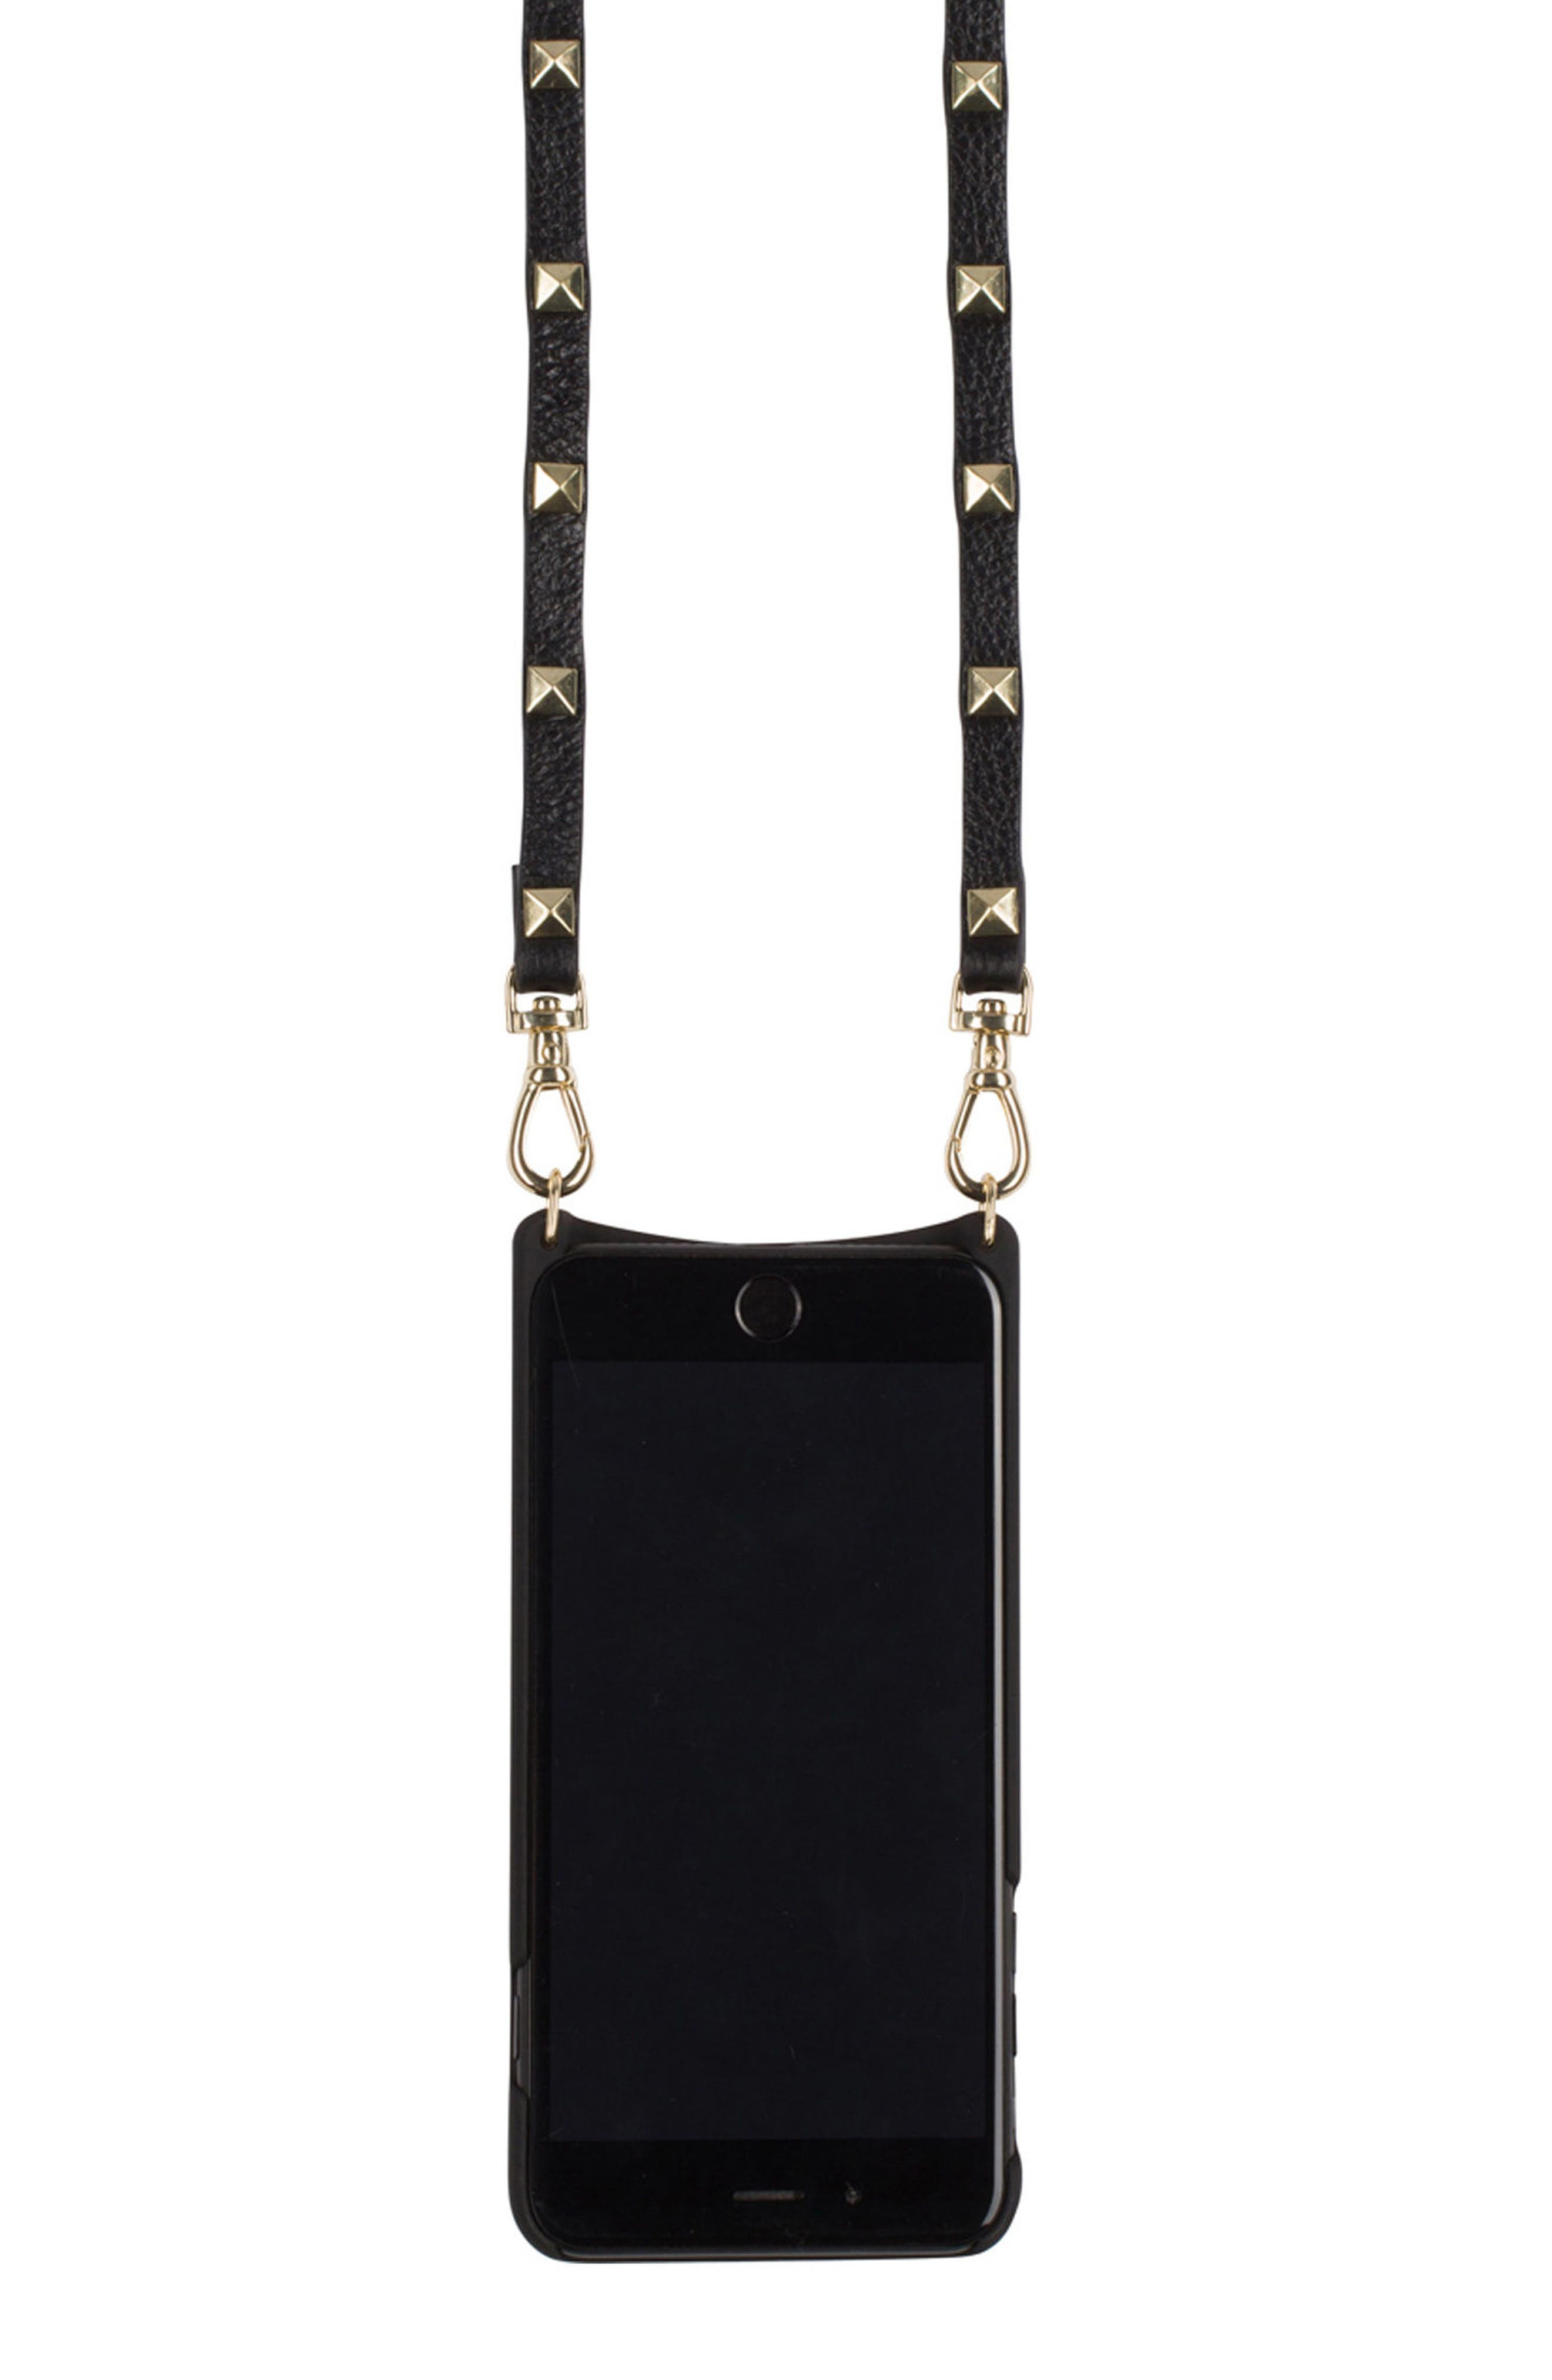 Sarah Leather iPhone 6/7/8 & 6/7/8 Plus Crossbody Case,                             Alternate thumbnail 2, color,                             NEW BLACK/ GOLD